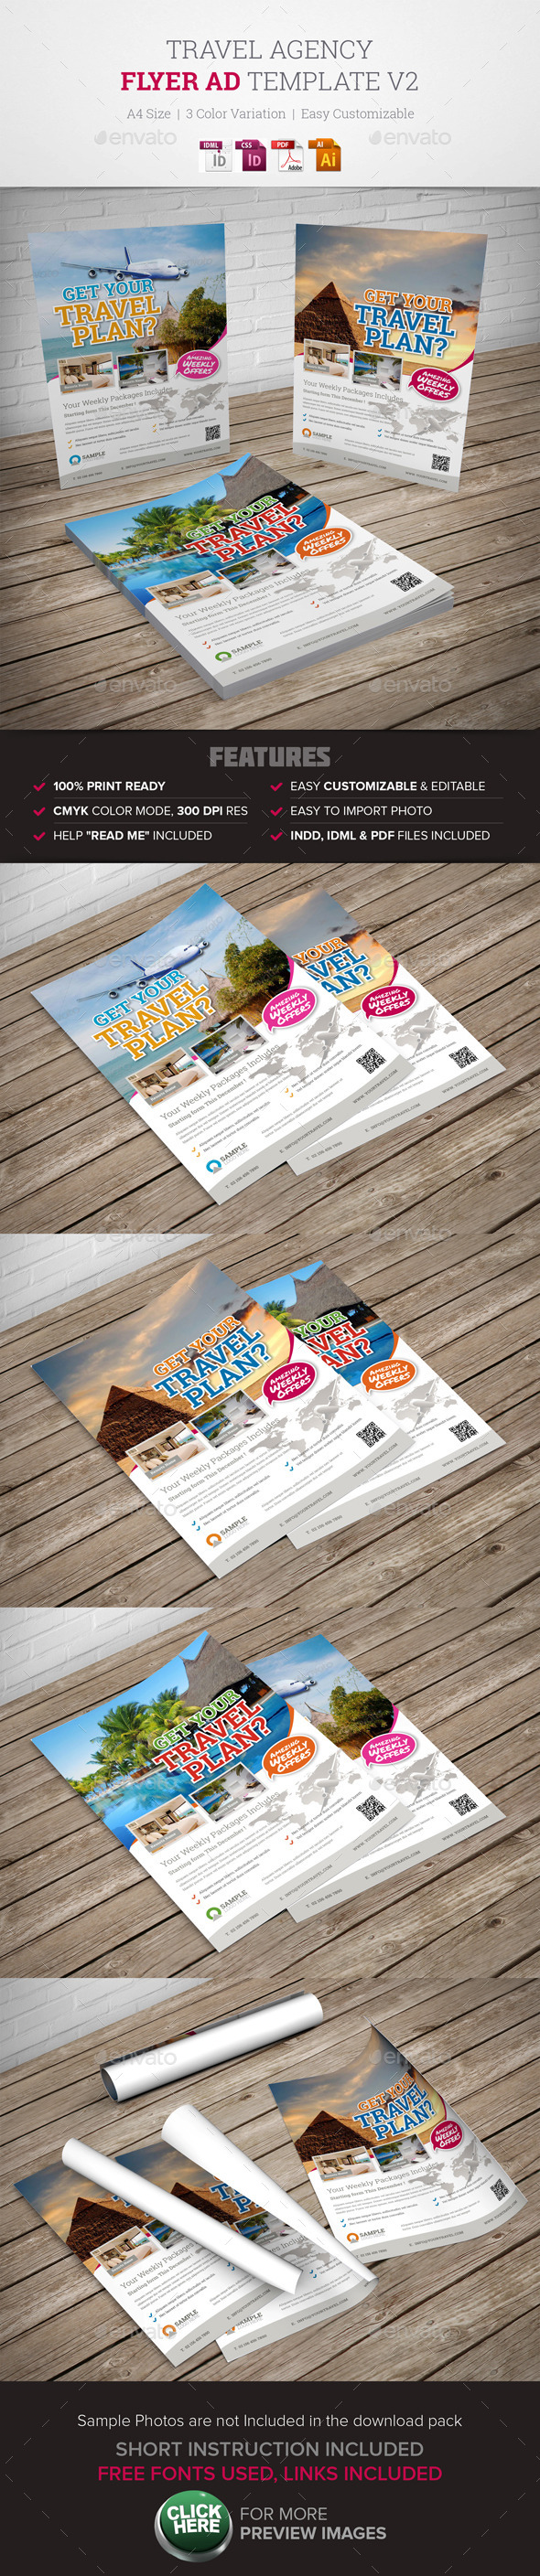 Travel Agency Flyer Ad v2  - Corporate Flyers